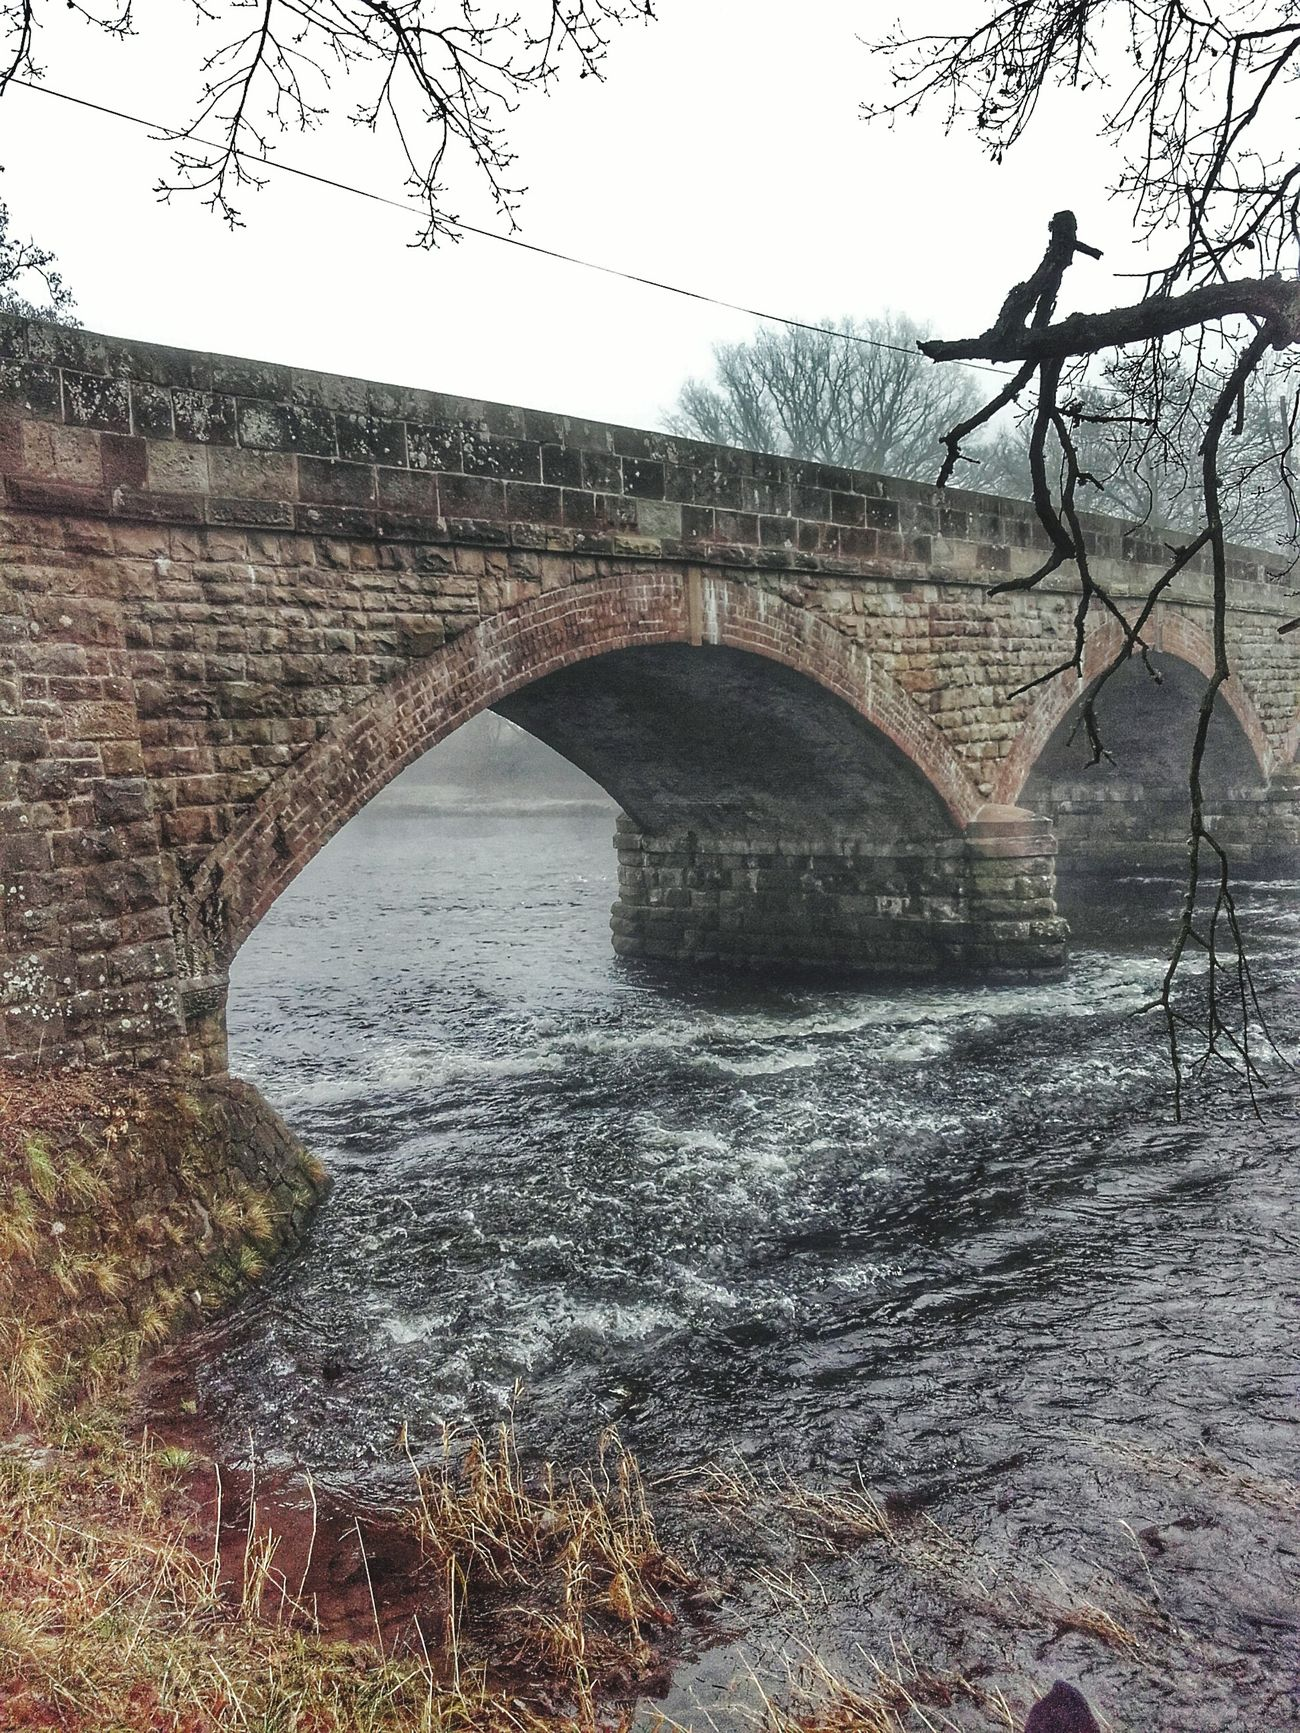 Bridge - Man Made Structure No People Foggy Day Water River Severn In Newtown, Winter 2016